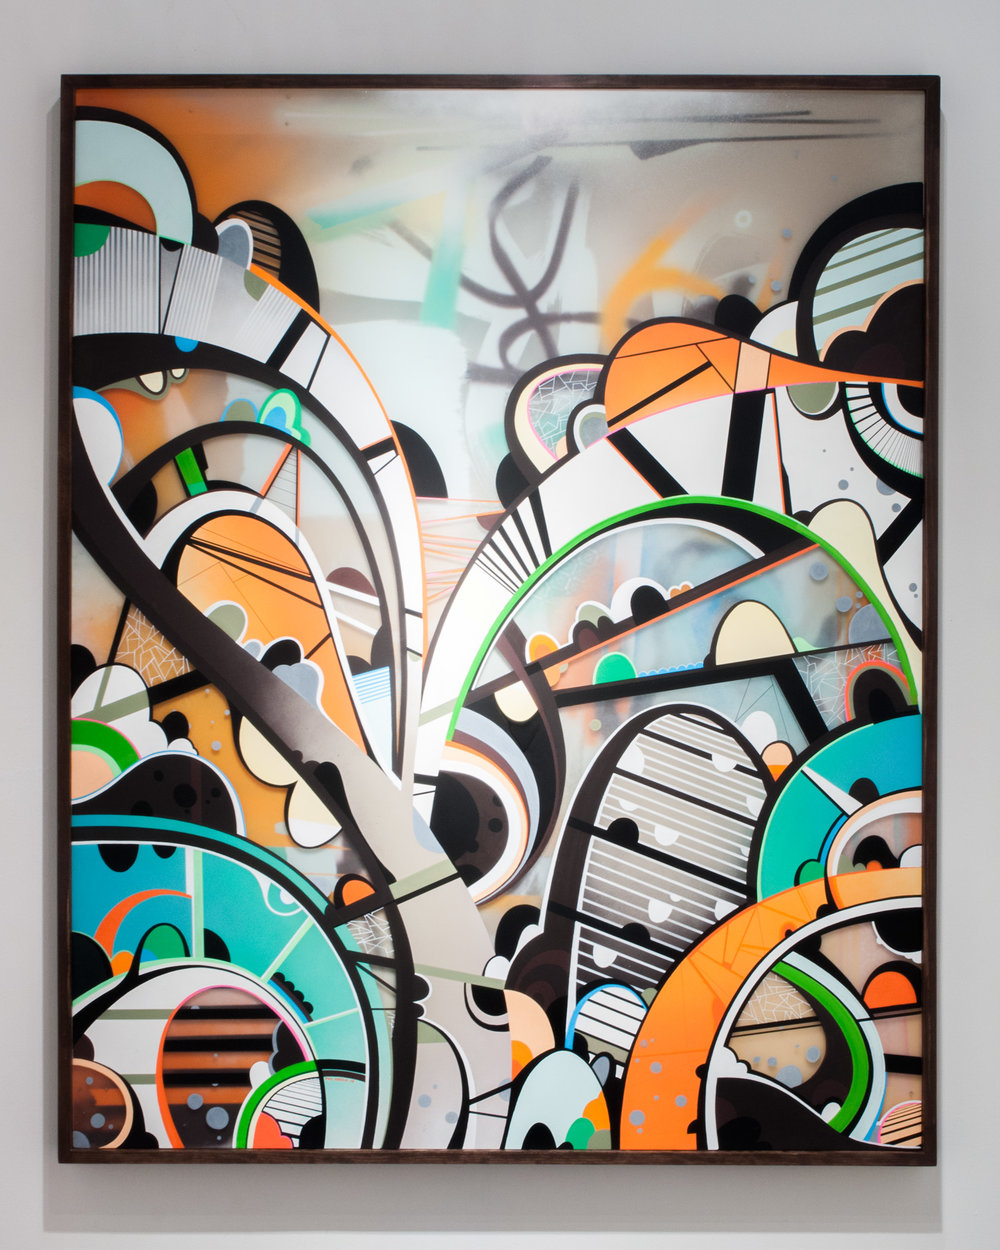 Battles  mixed media on double layered Plexiglas  48 x 60 inches PHA 012G